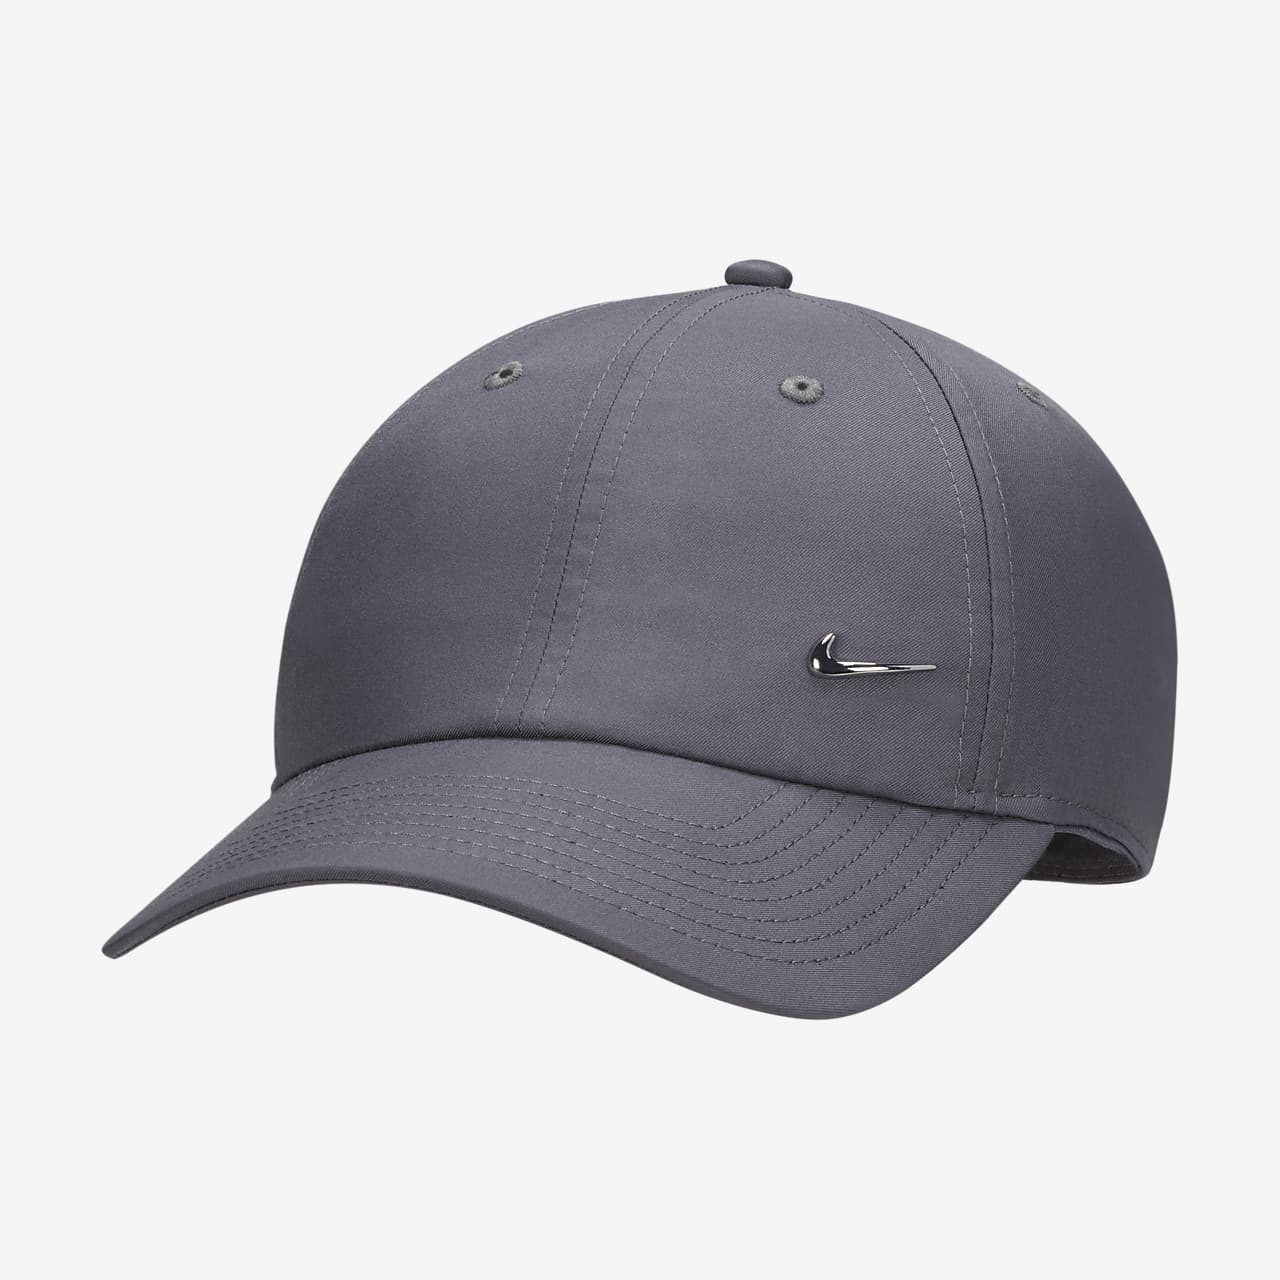 91d5c23d84d6 Nike Metal Swoosh H86 Adjustable Hat. Nike.com GB